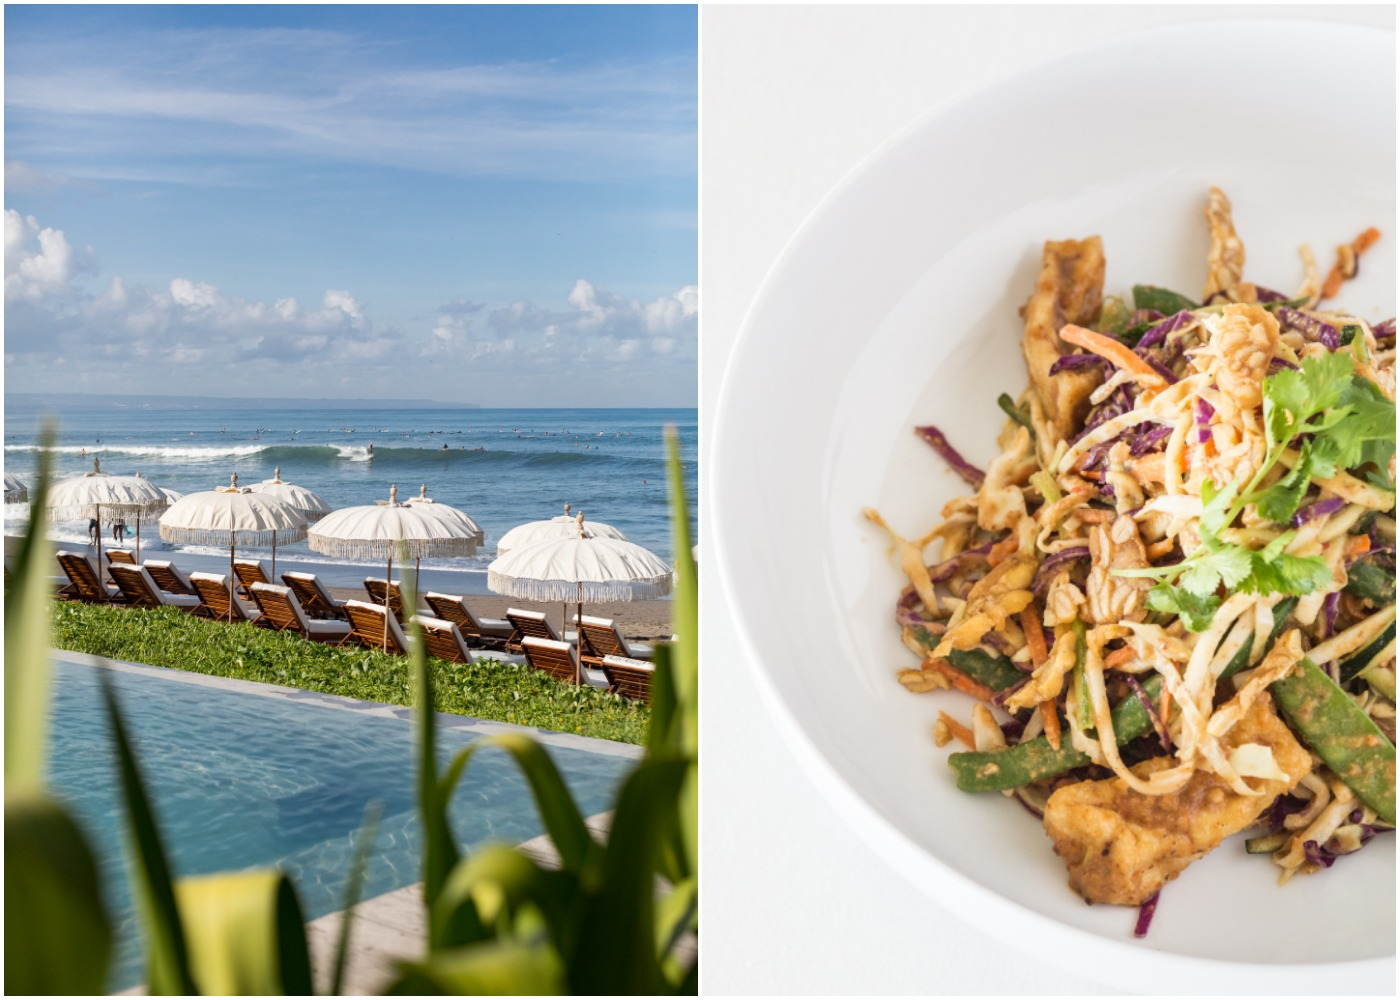 View of The Lawn restaurant & beach club and the signature Gado Gado in Canggu Bali, Indonesia